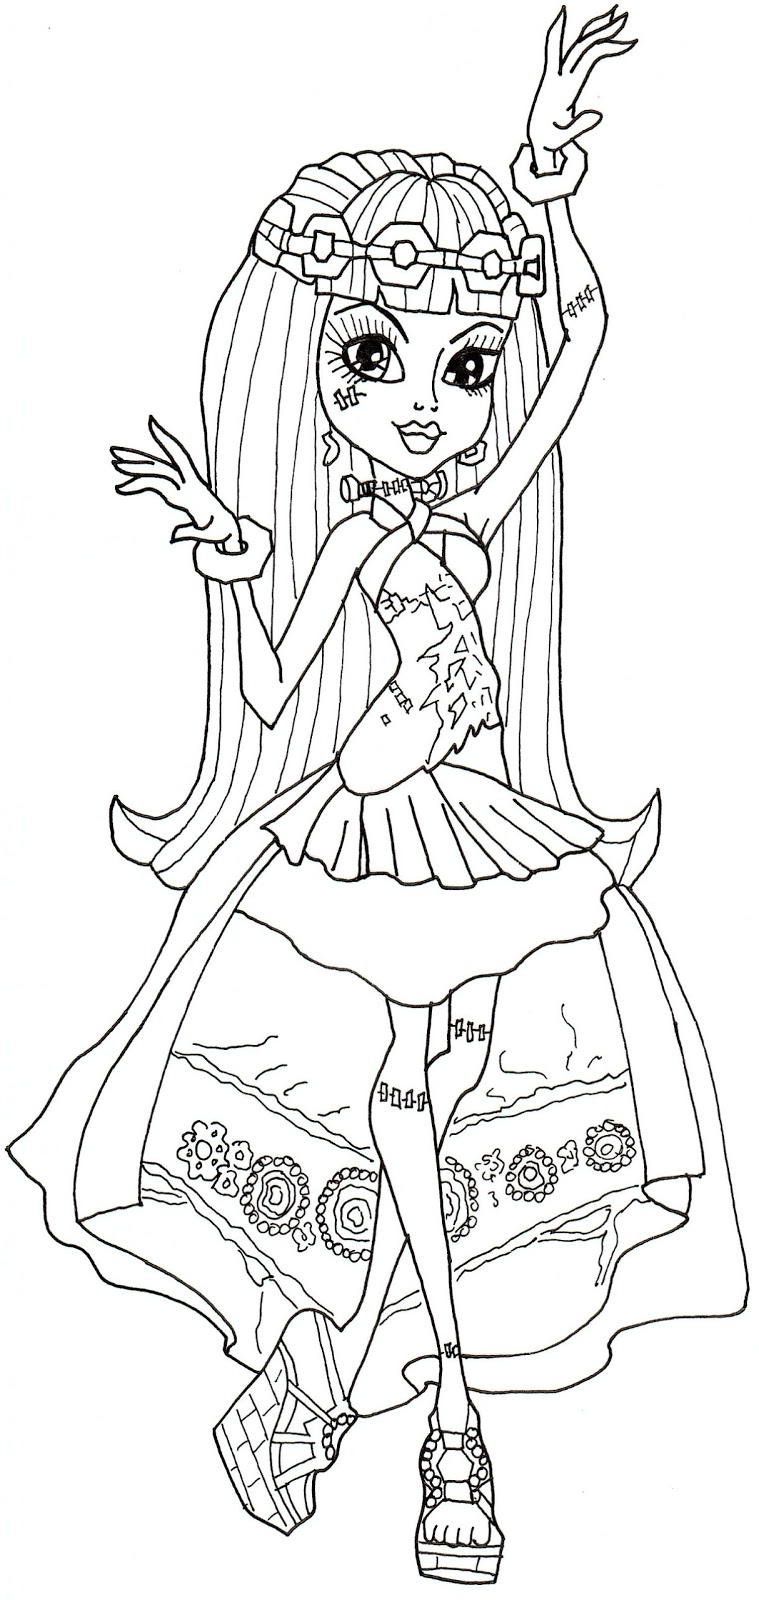 Free printable monster high coloring pages june 2013 for Monster high free coloring pages